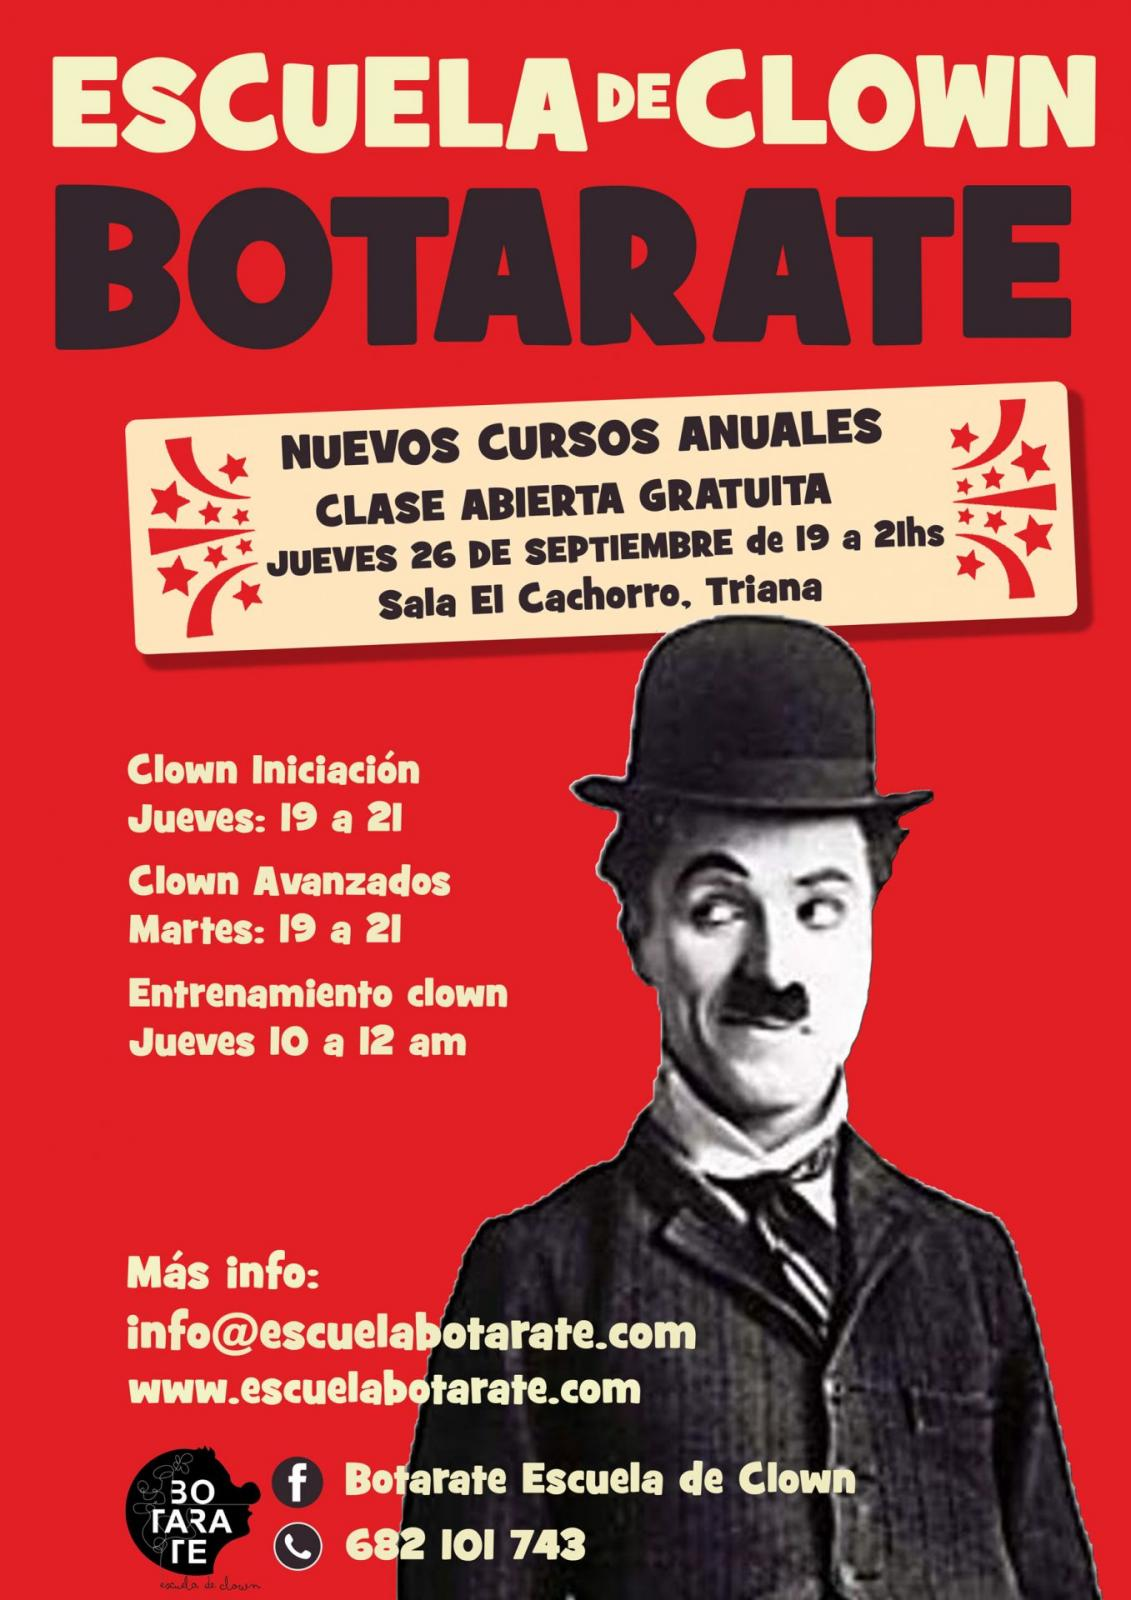 Cartel de anuales de clown